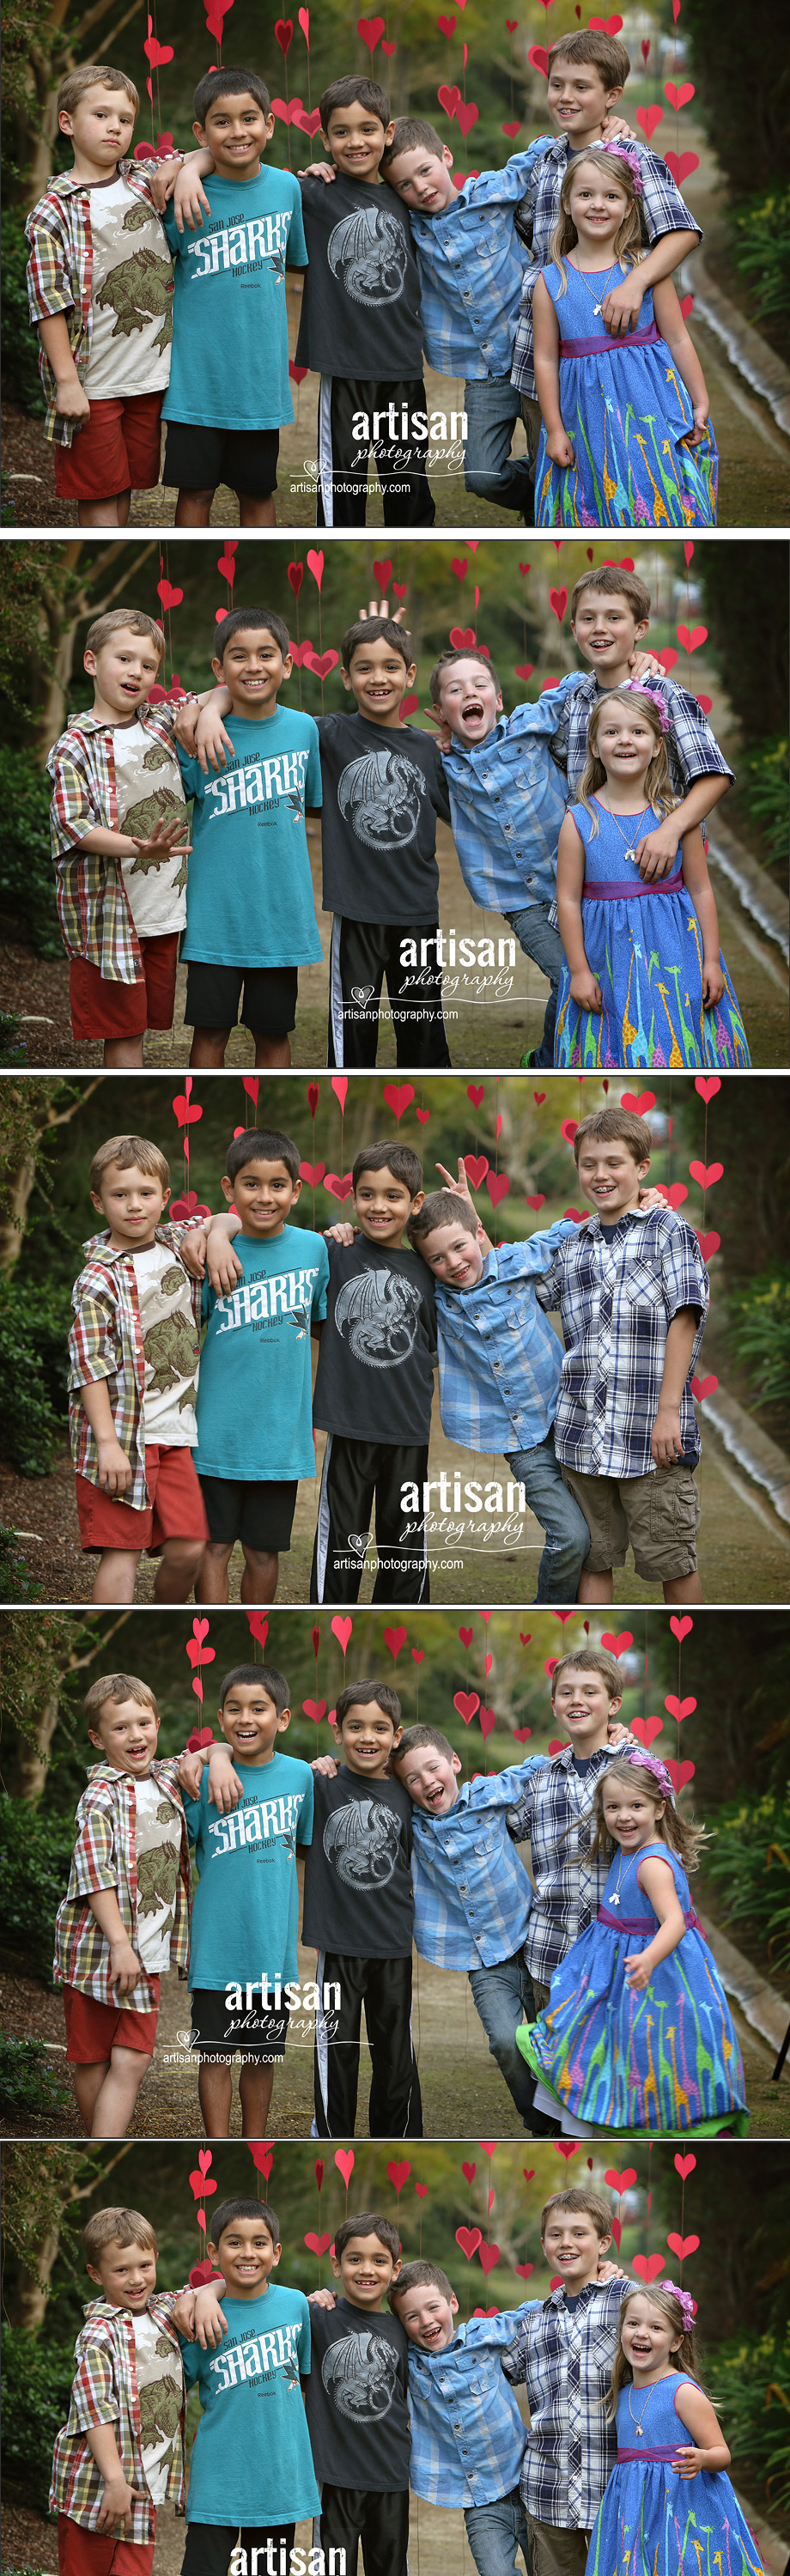 Valentines Day Photos of the kids with red hearts in the backgroun